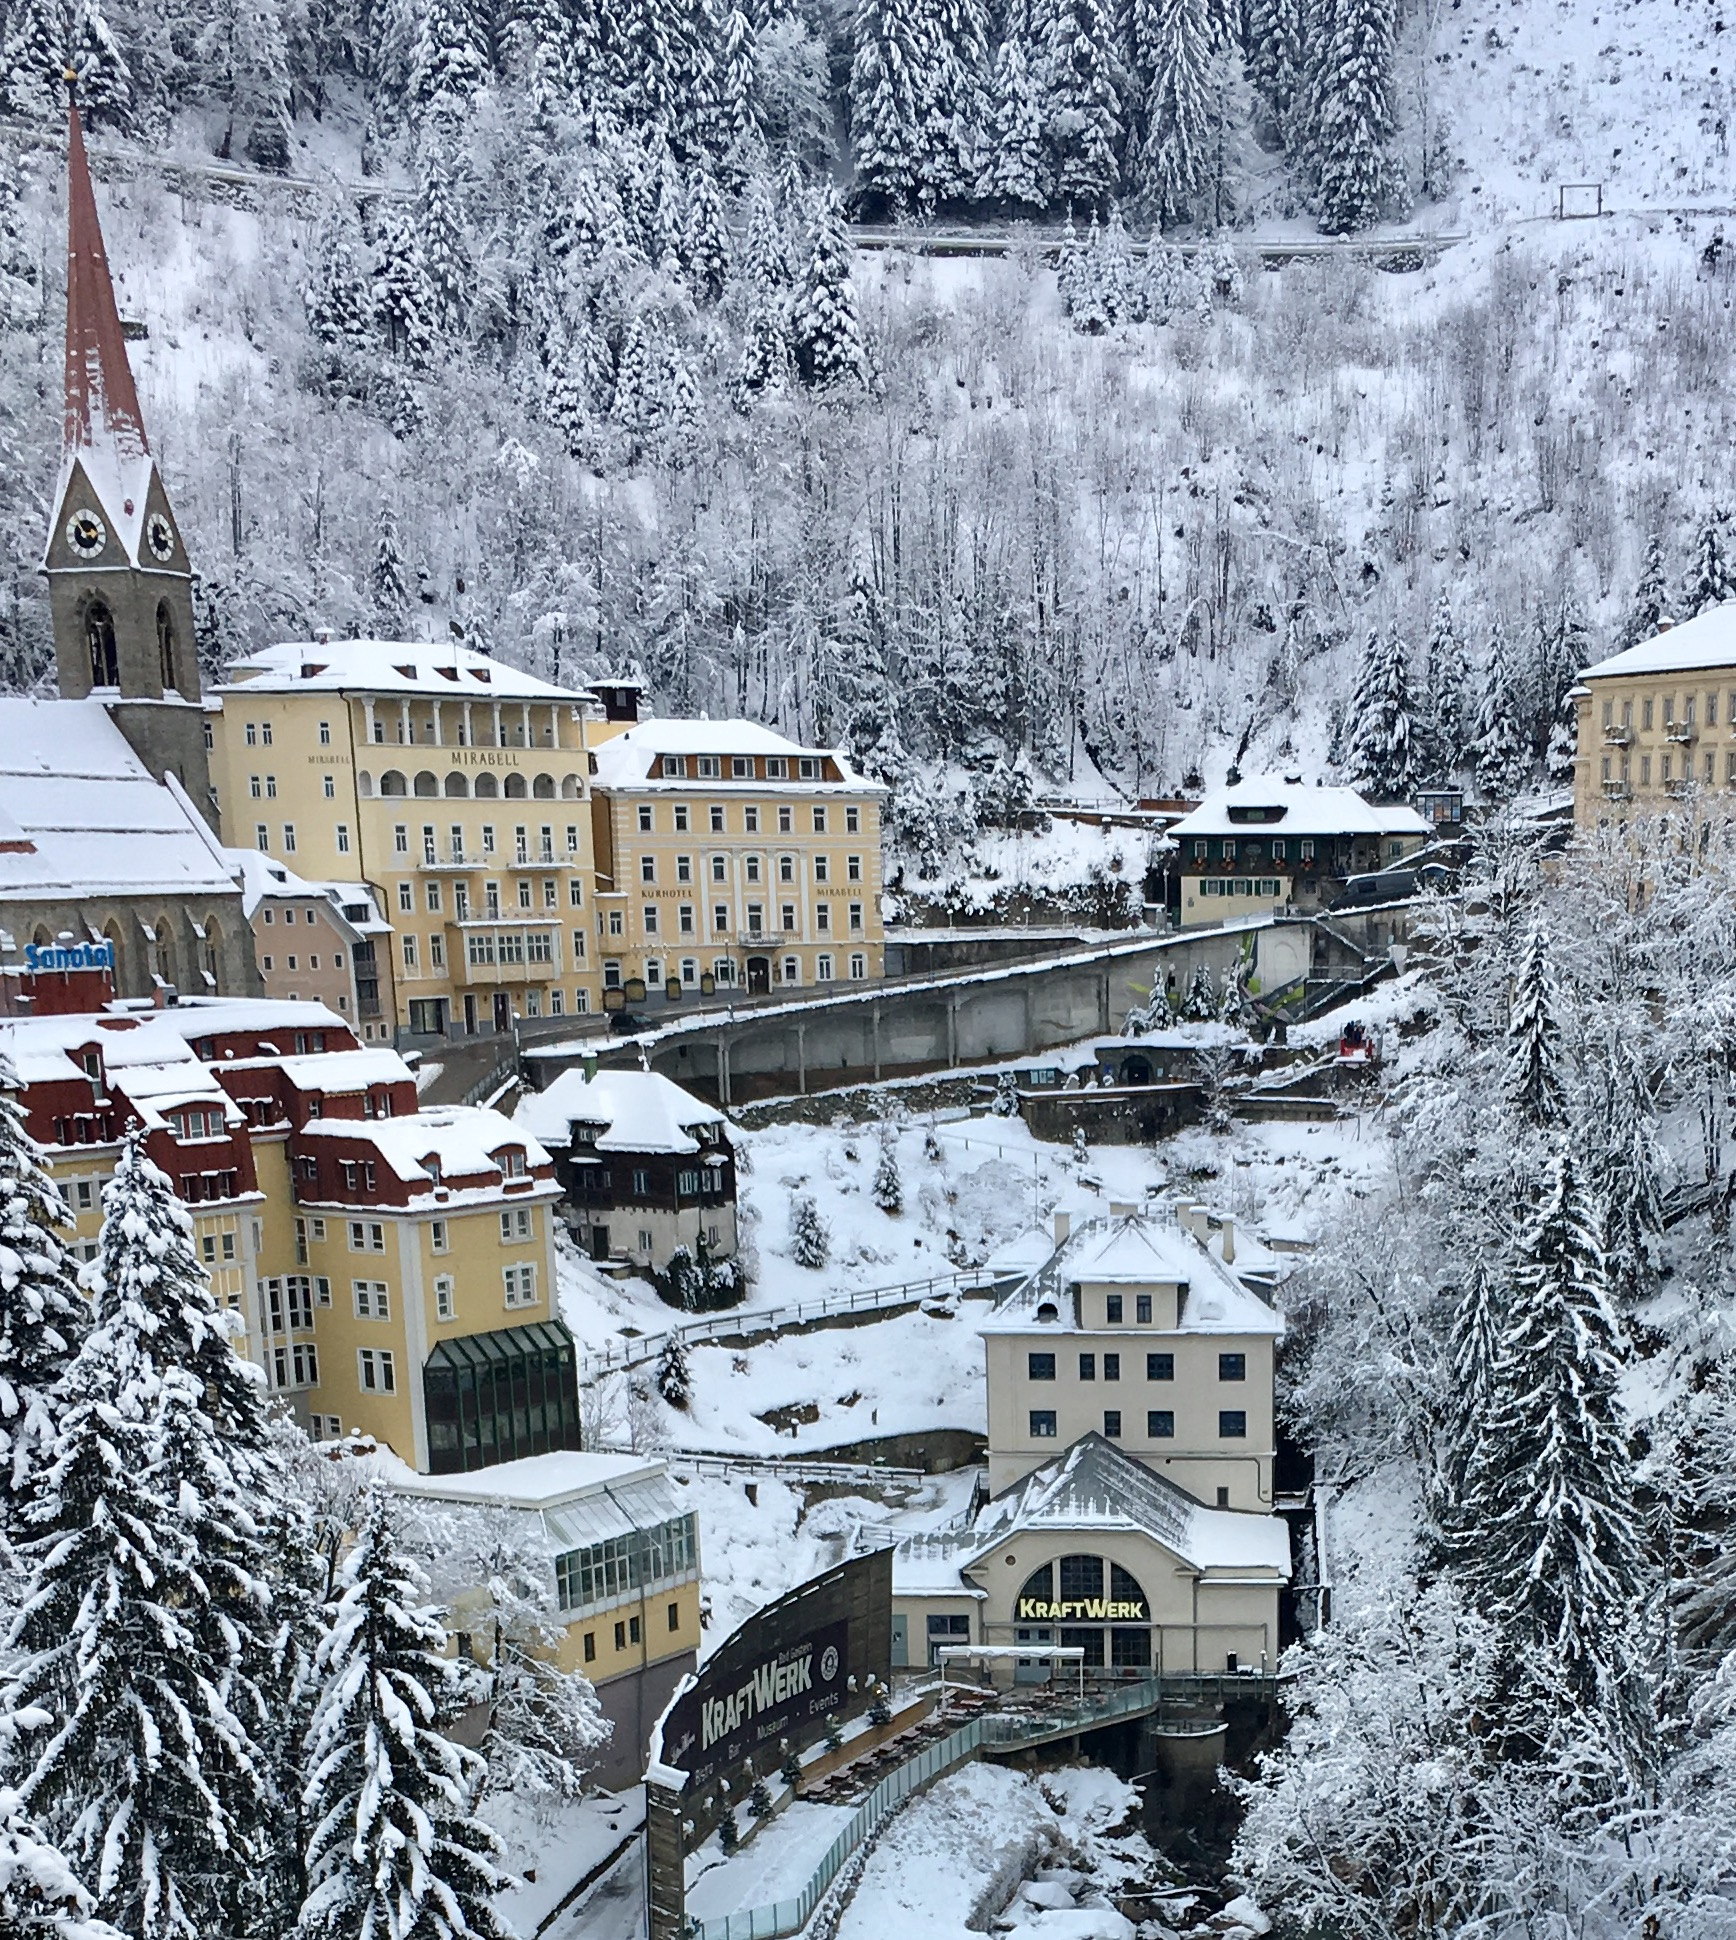 The Revival of Sleeping Beauty: Bad Gastein, Austria